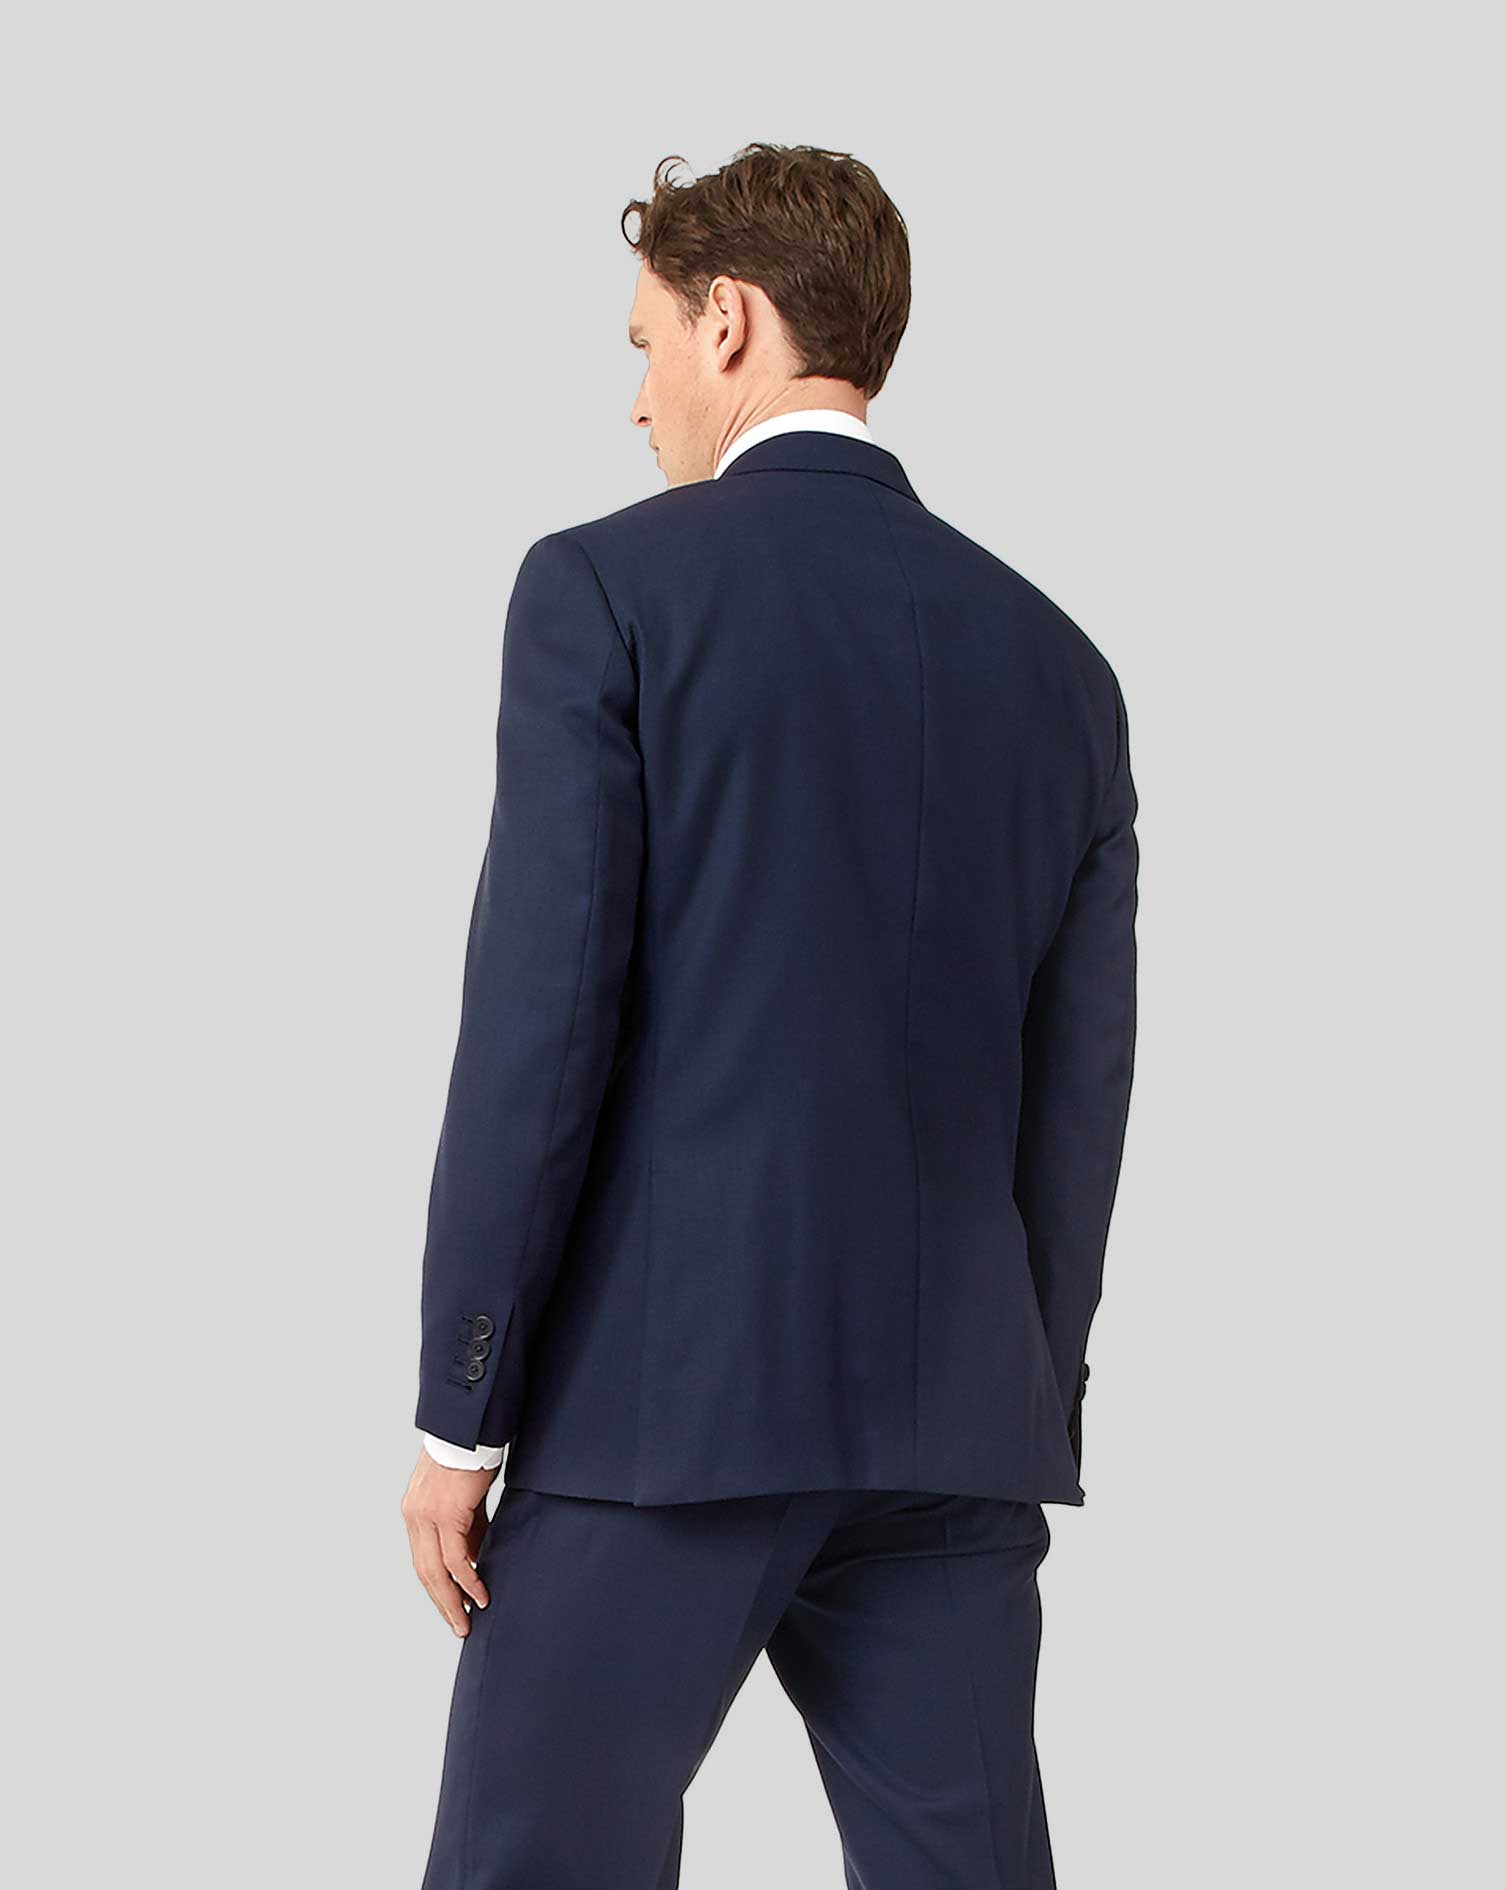 Ink blue classic fit birdseye travel suit jacket